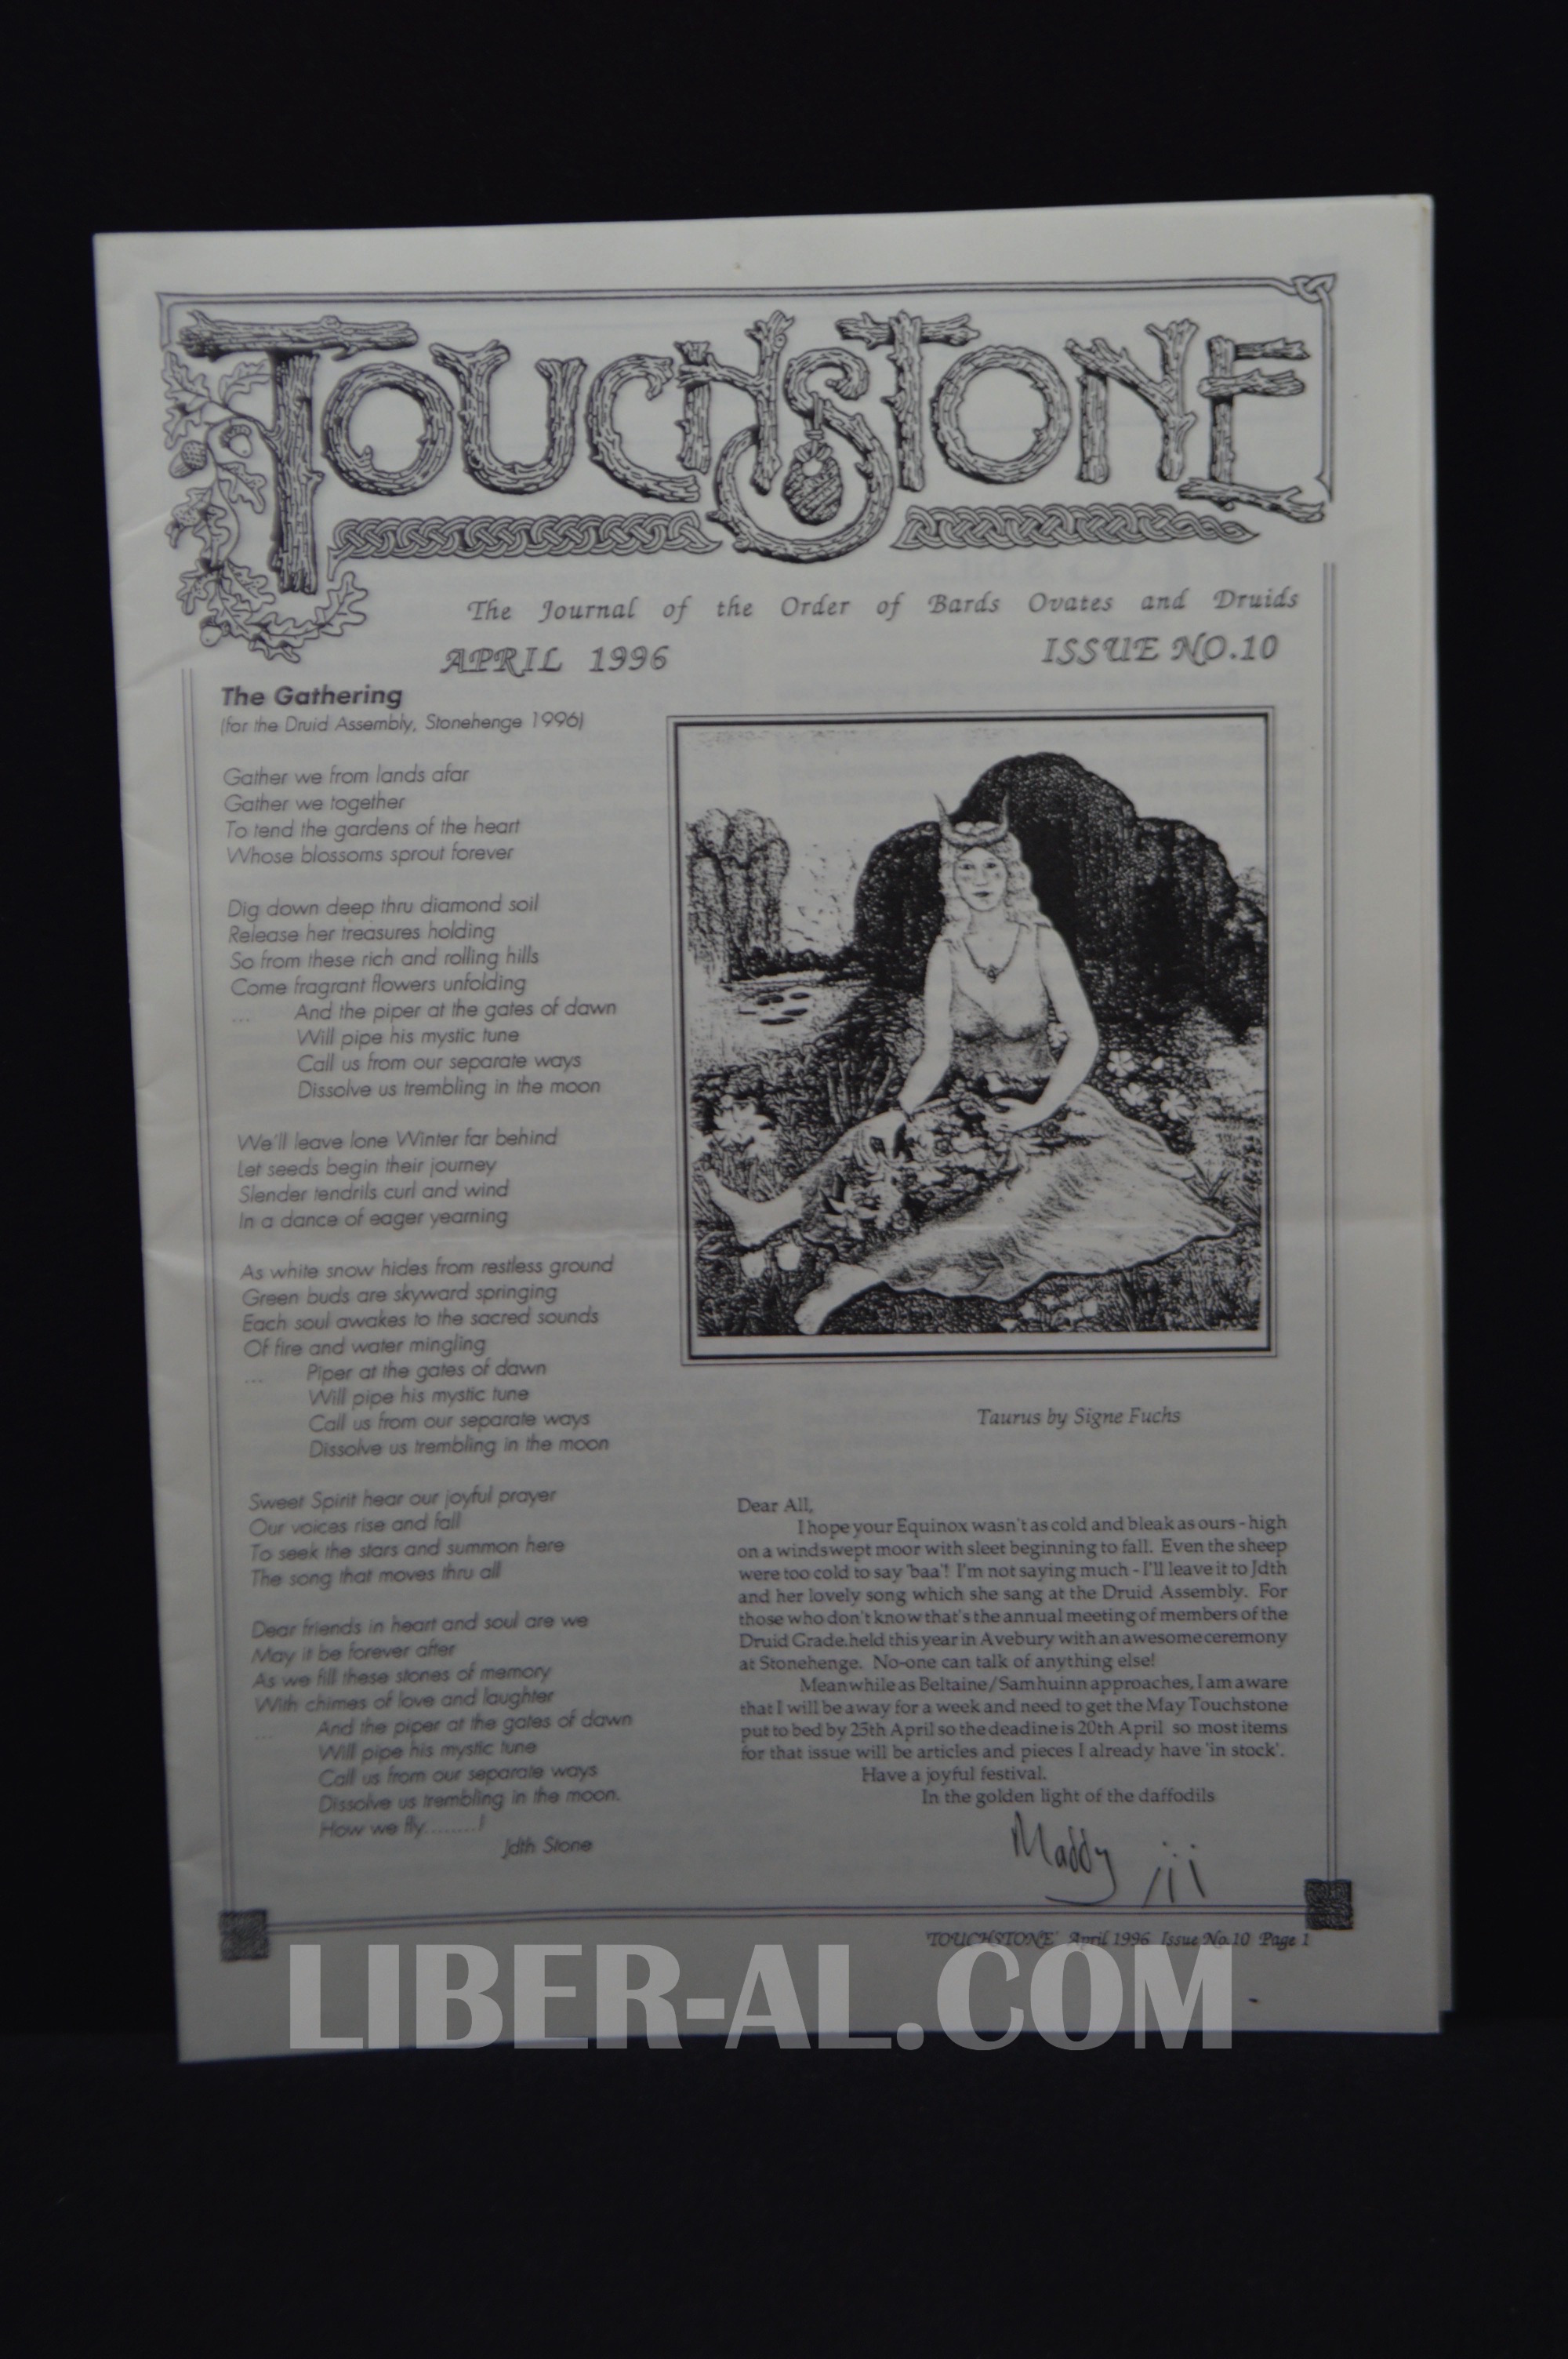 Touchstone Issue No  10 April 1996 [The Journal of the Oder of Bards Ovates  and Druids]